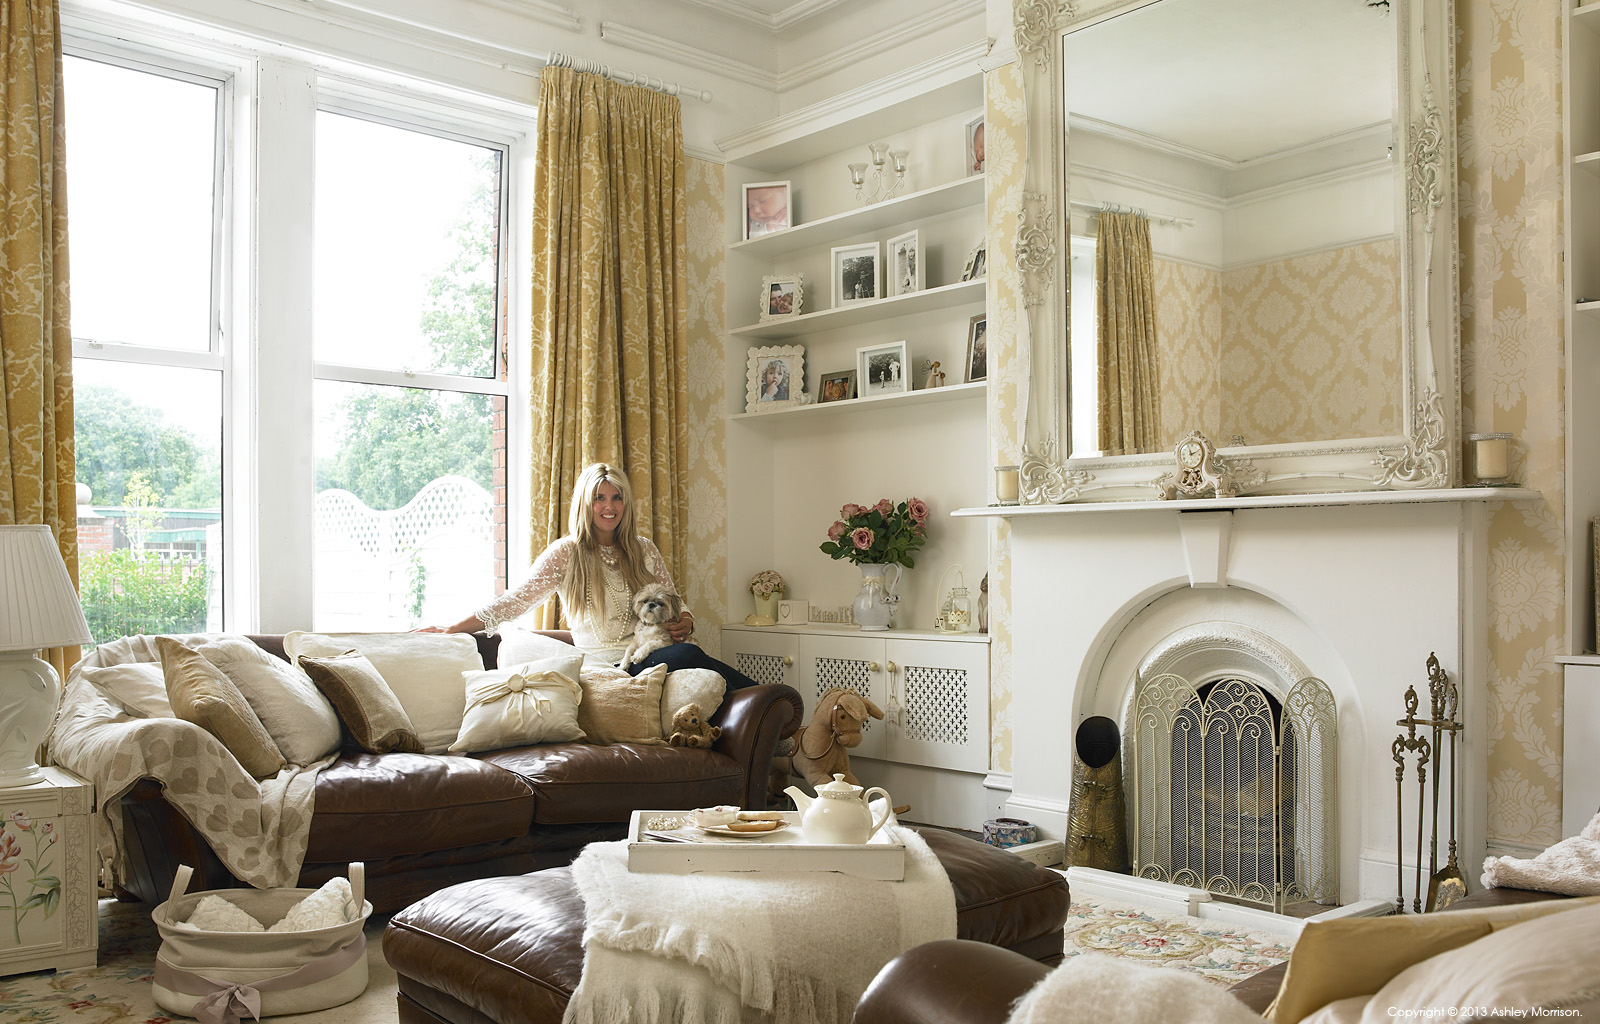 Amanda McGuile in the living room of her renovated double fronted mid terrace house in Belfast by Ashley Morrison.